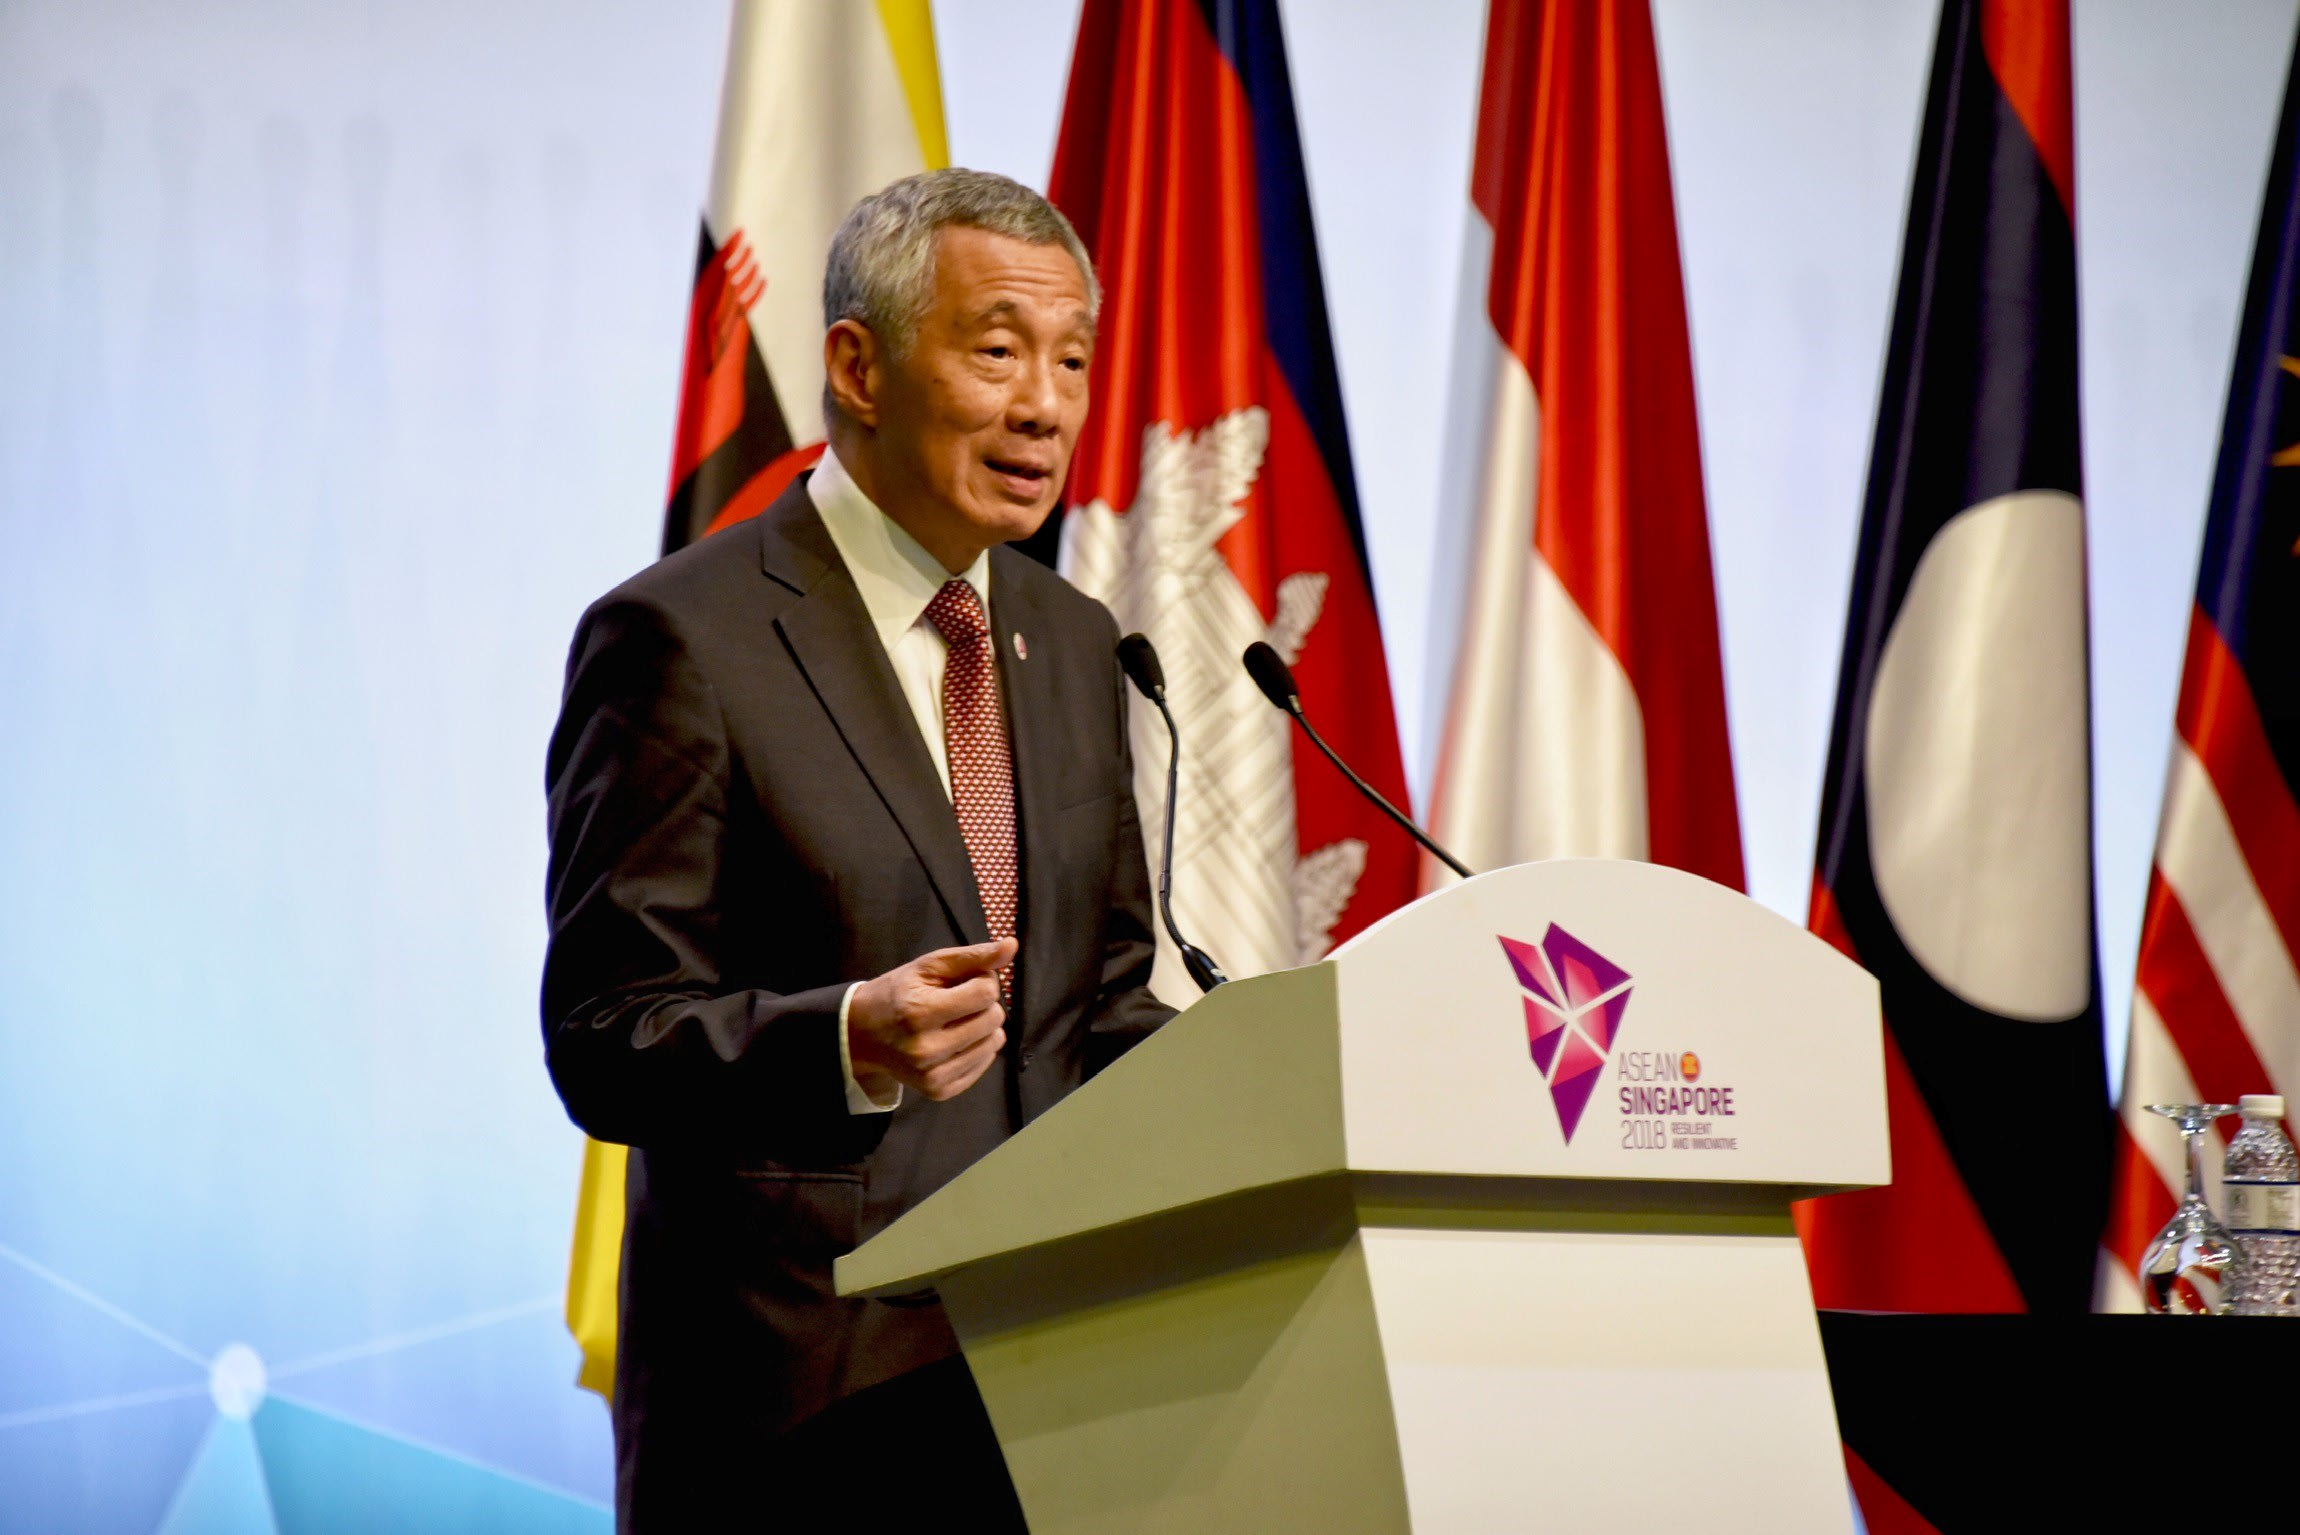 ASEAN's overall prospects promising, but there are challenges: PM Lee | Video